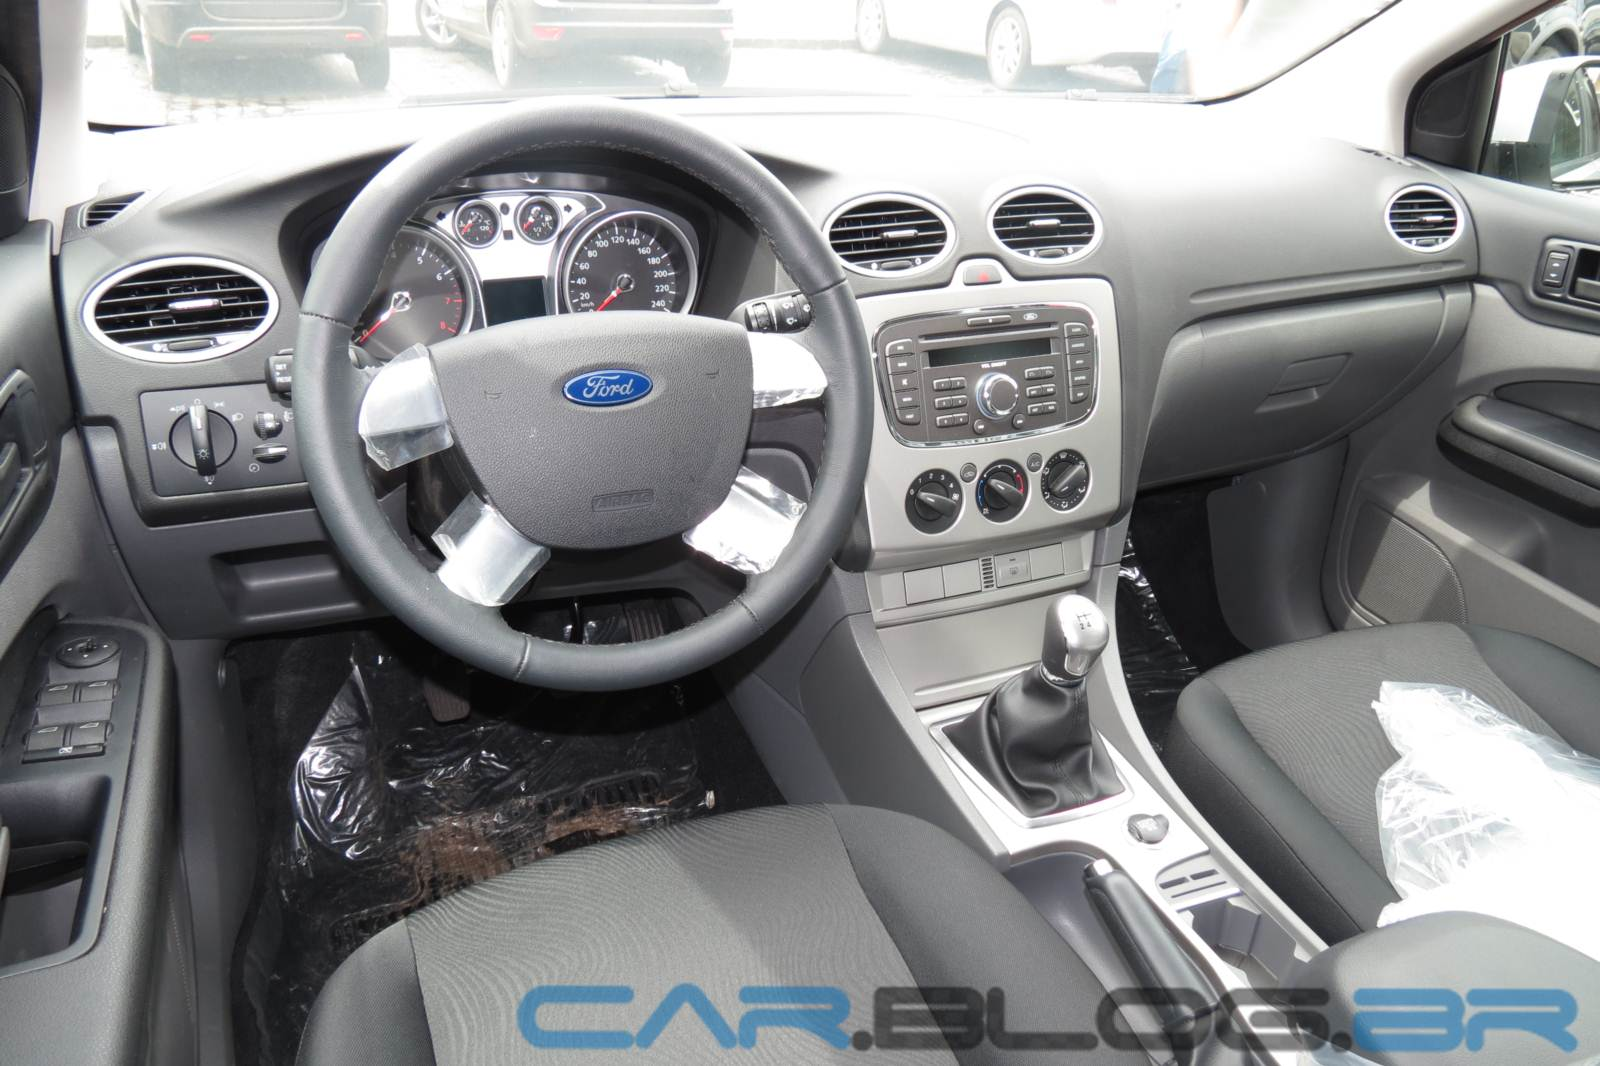 Ford Focus 1.6 2013 photo - 9